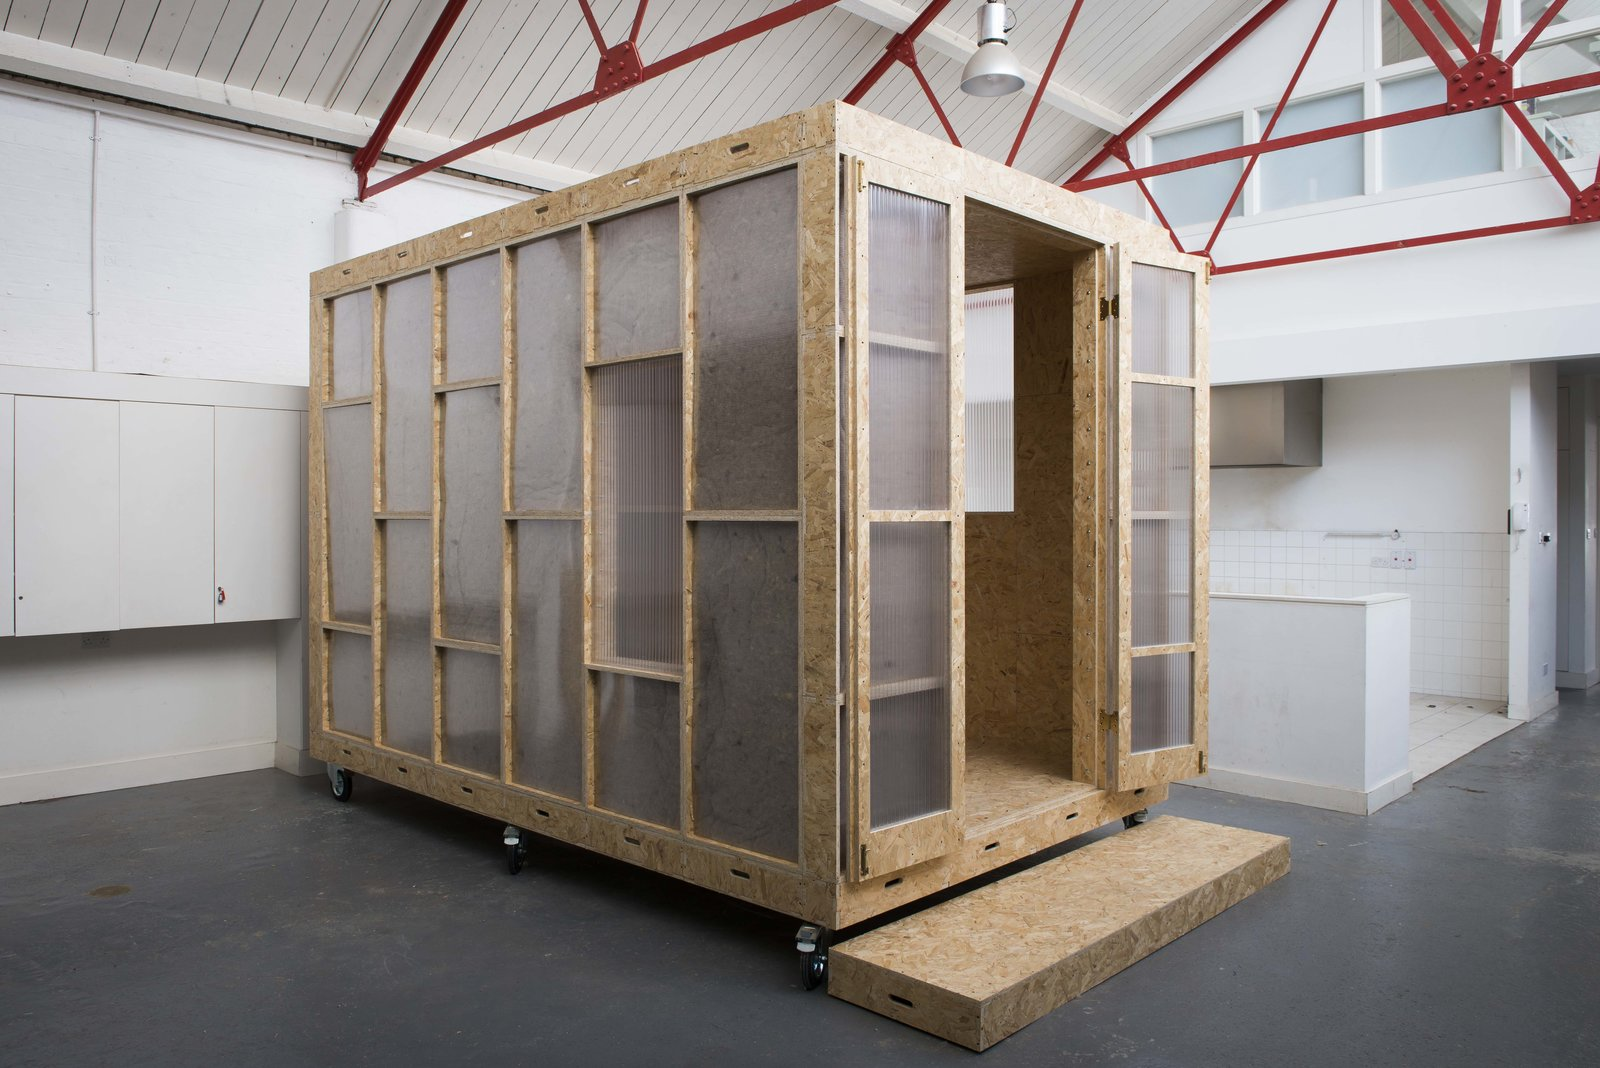 Small Patio, Porch, Deck, Shed & Studio, and Living Space Room Type  Photo 2 of 9 in A New Concept For Modular, Affordable Housing Is Coming to London's Vacant Buildings